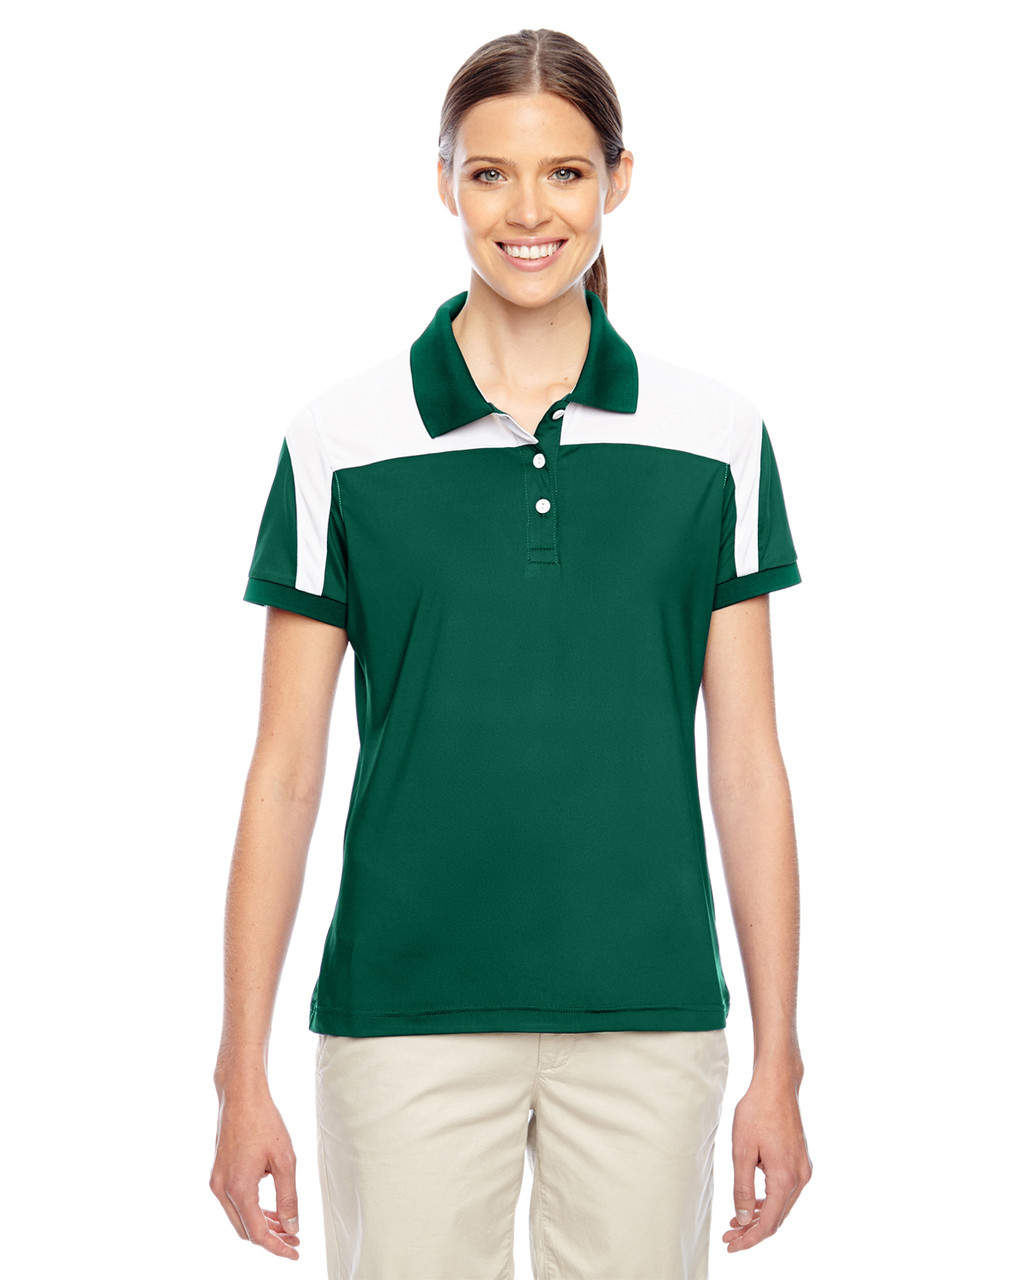 Forest/White - TT22W Team 365 Victor Performance Polo Shirt